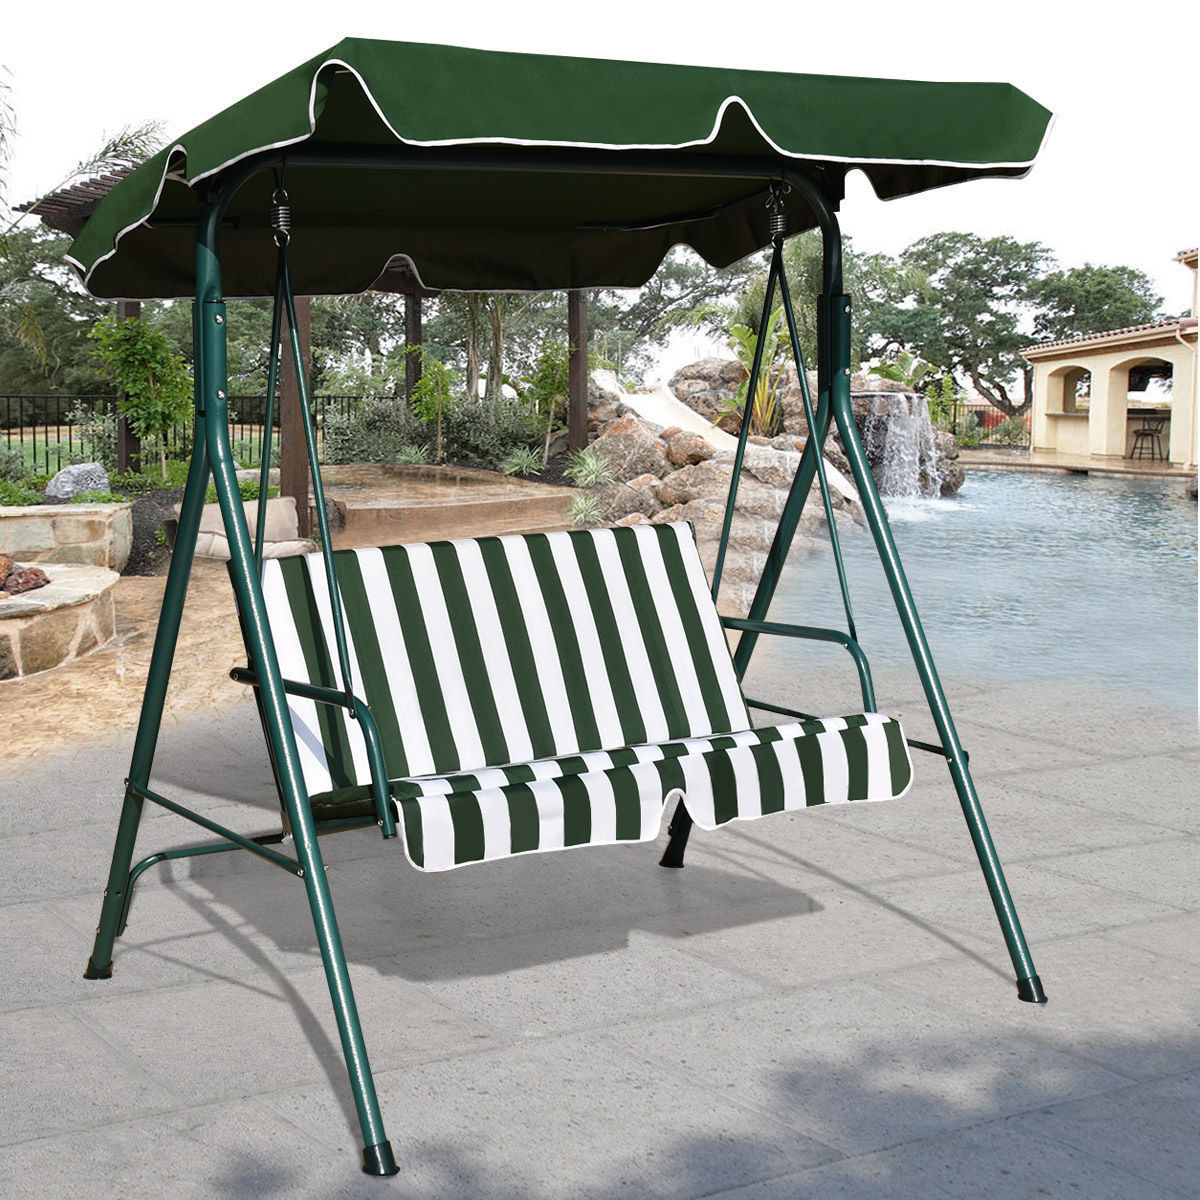 Outdoor Patio Canopy Swing Cushioned Chair Iron 2 Person Yard Furniture Green Intended For Fashionable 2 Person Antique Black Iron Outdoor Swings (View 6 of 30)